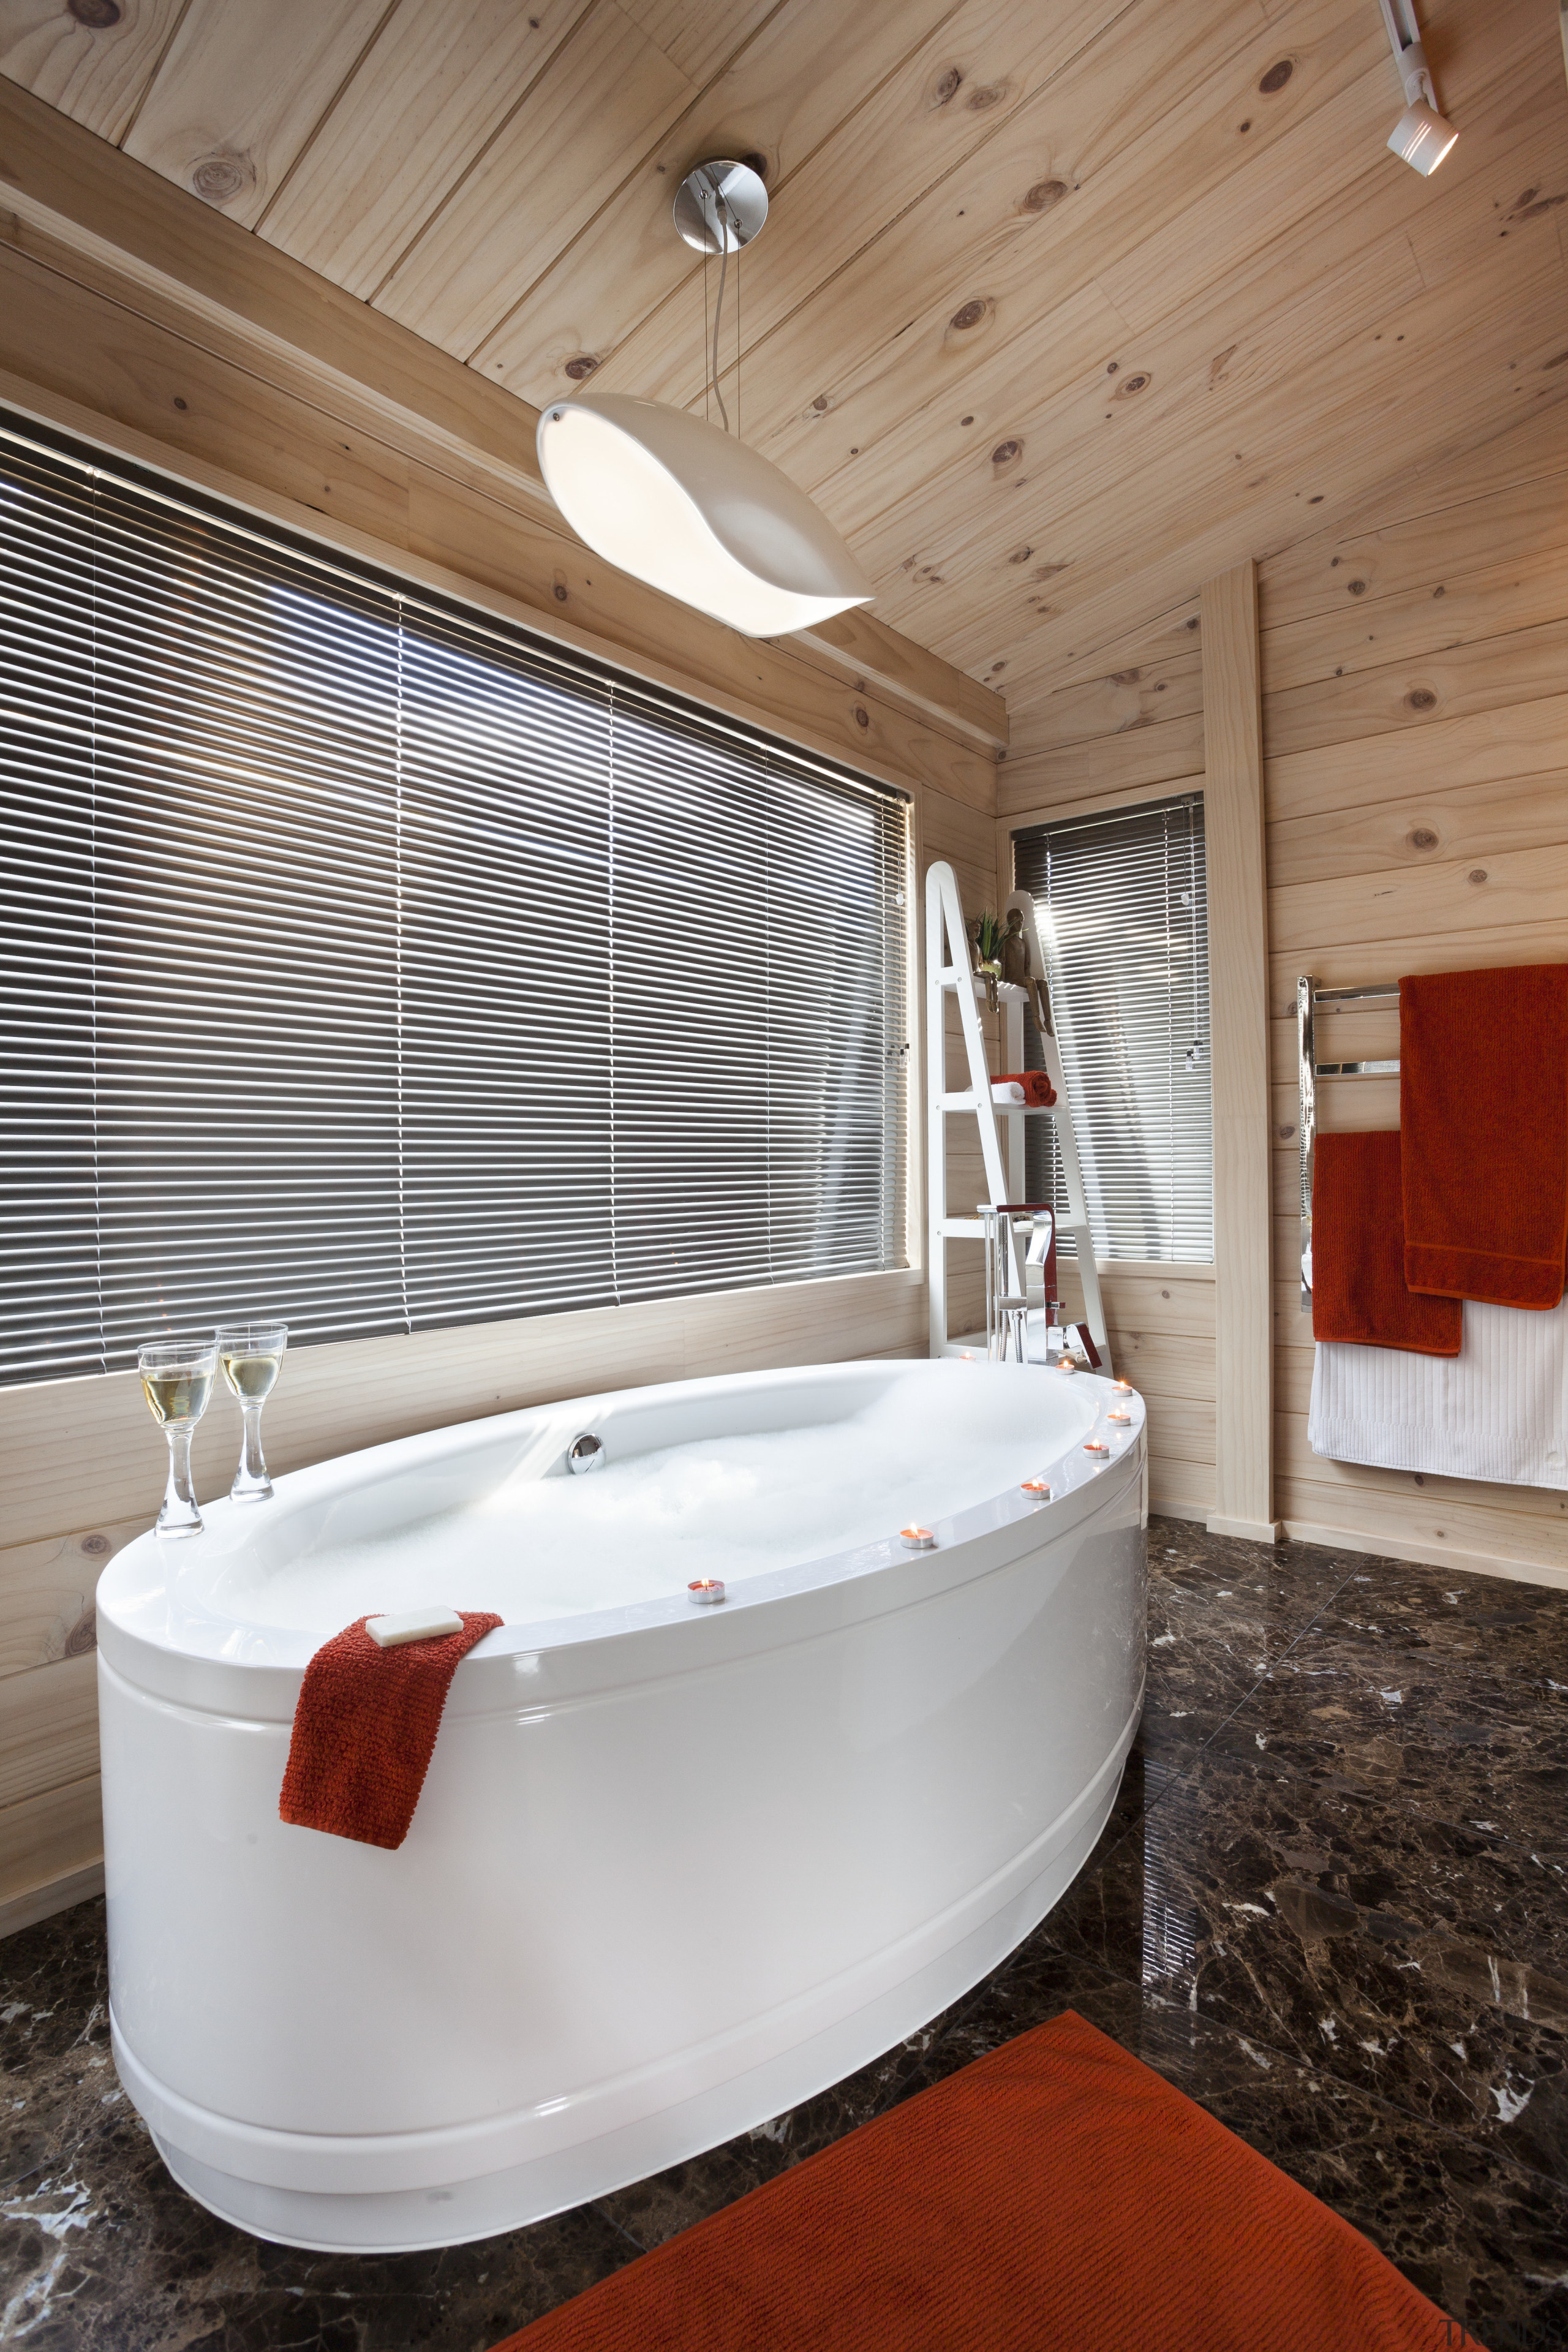 A freestanding tub is a feature of the architecture, floor, flooring, furniture, interior design, room, wood